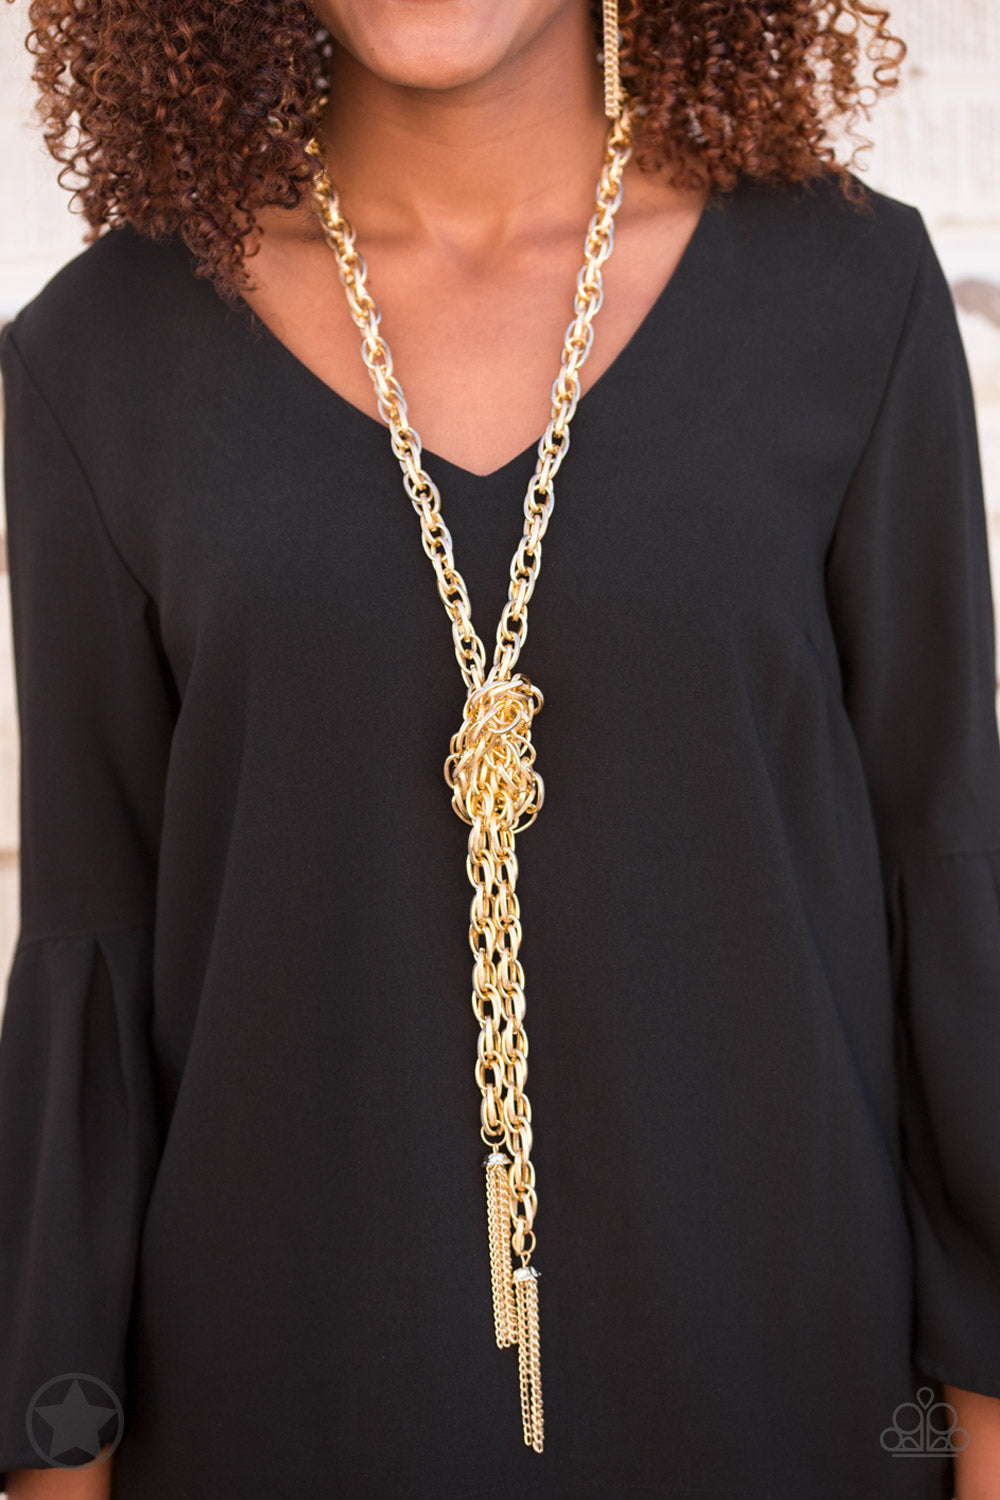 SCARFed for Attention - Gold Necklace - Paparazzi Accessories